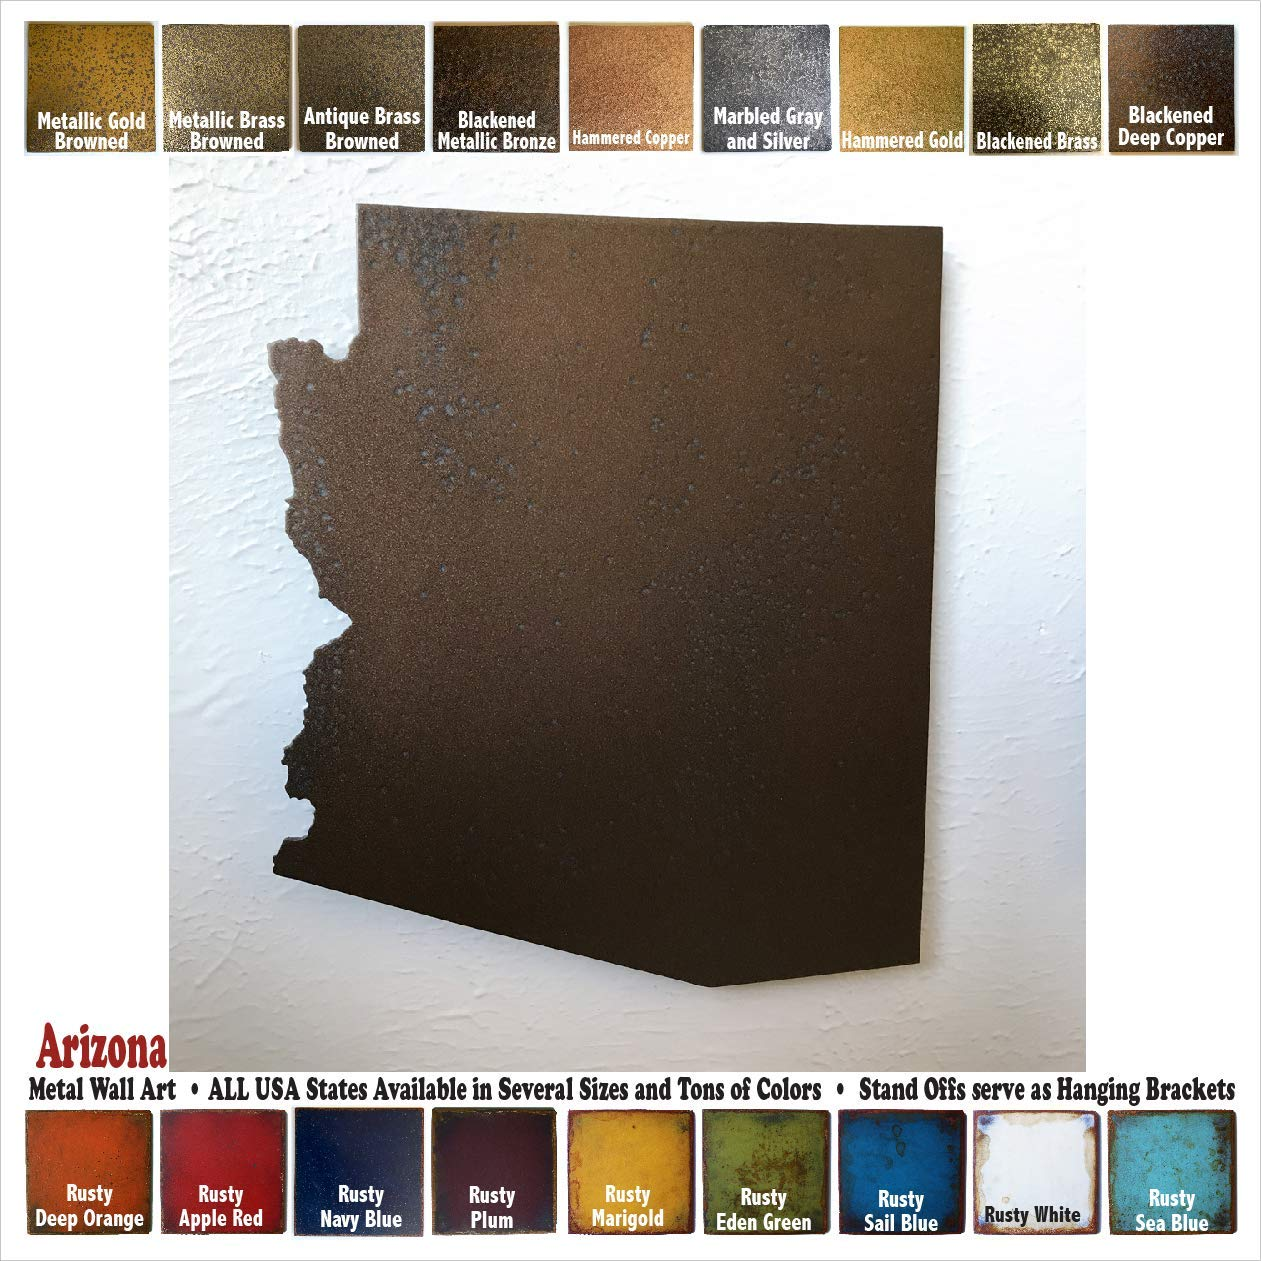 Arizona metal wall art - Choose 10